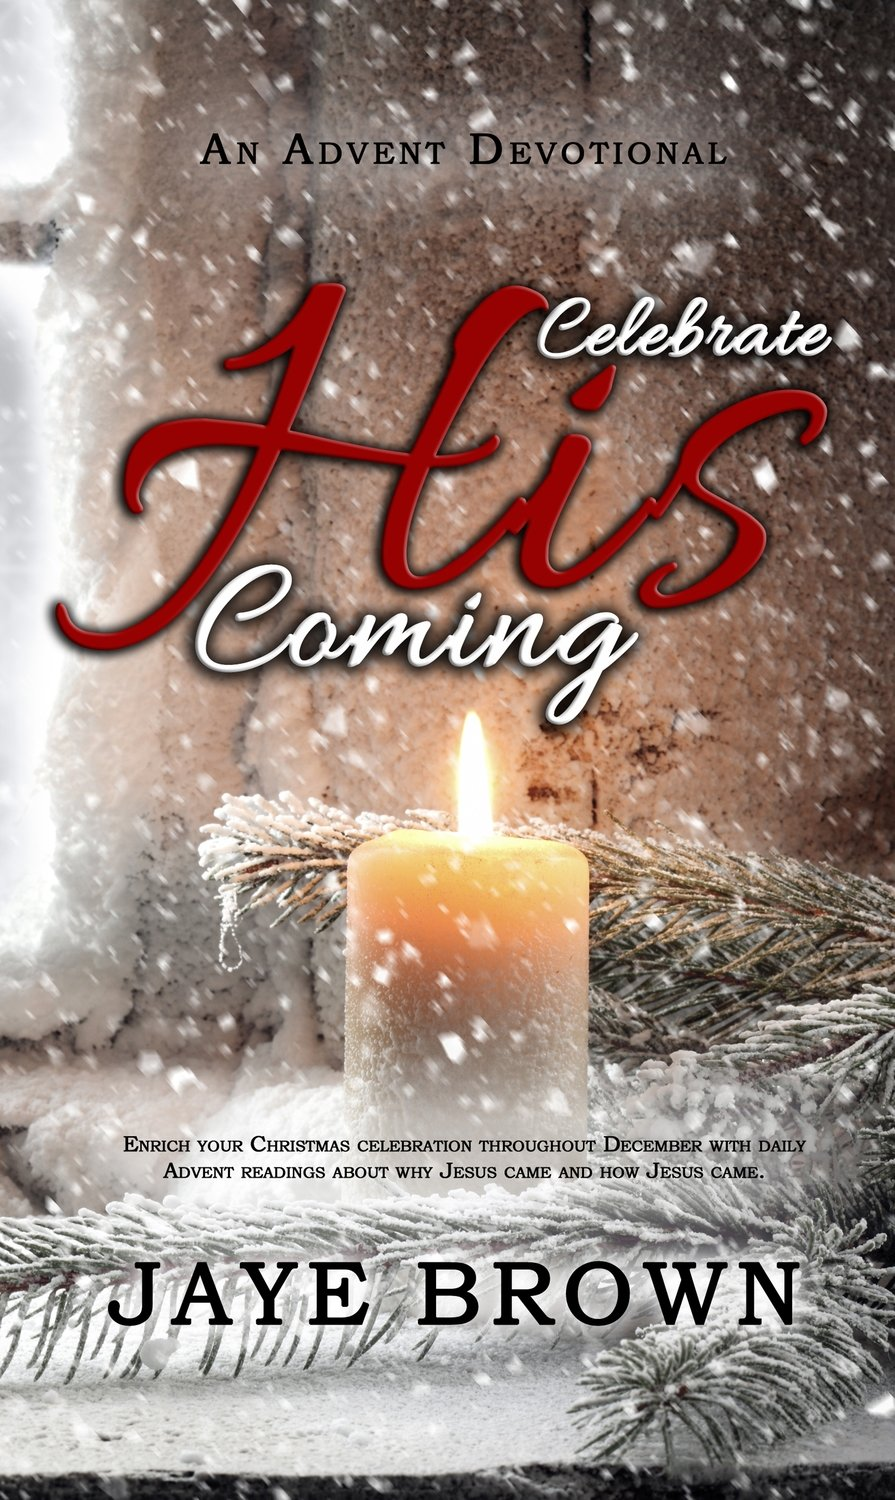 Celebrate His Coming - An Advent Devotional